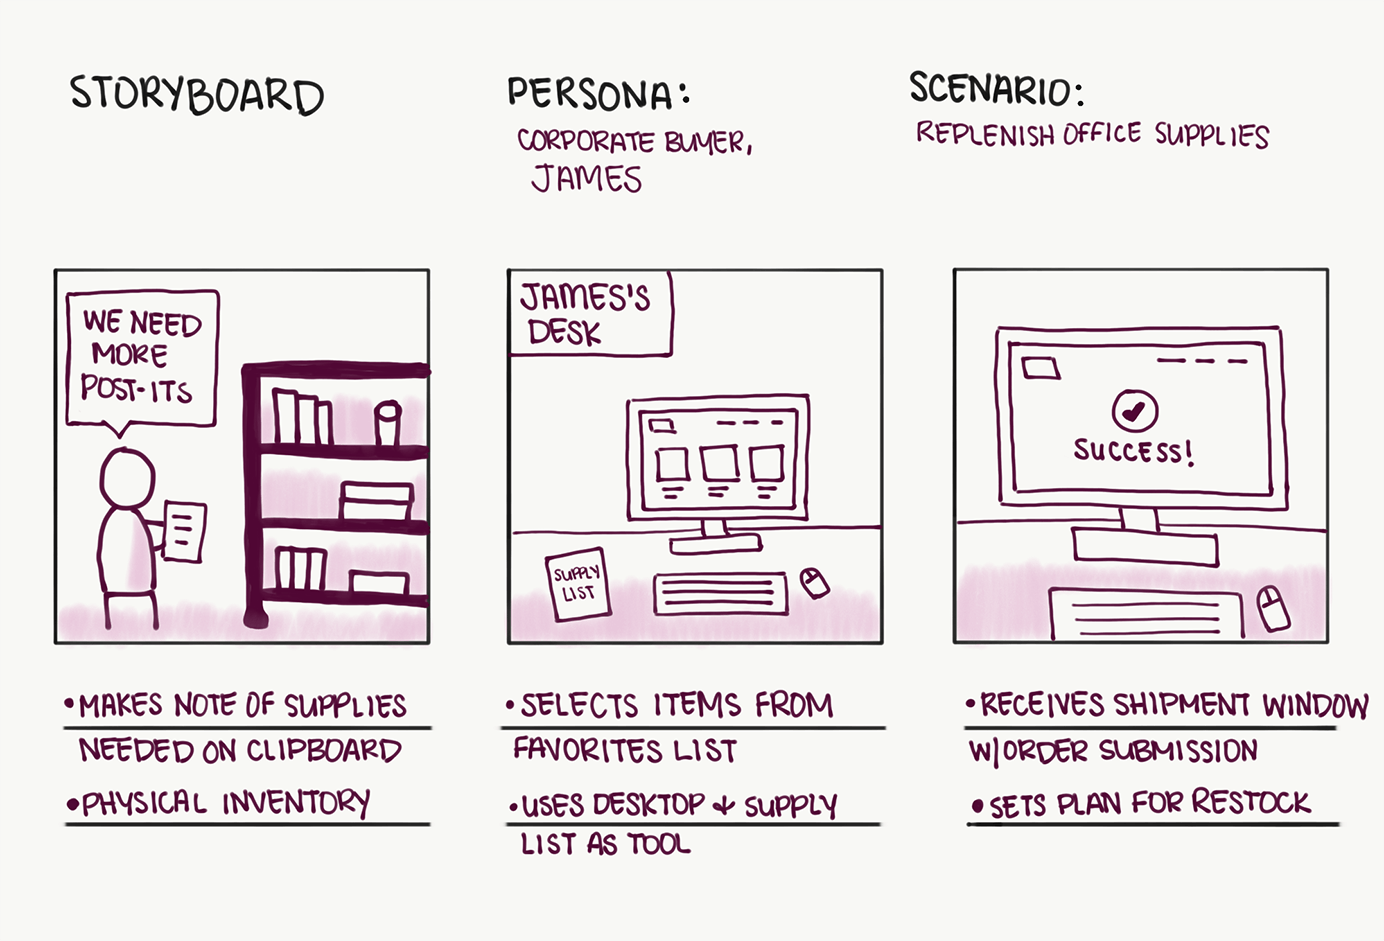 Basic Storyboard Ux Storyboard Basics Template Yourcustomersshoes Storyboard User Experience Design Experience Design